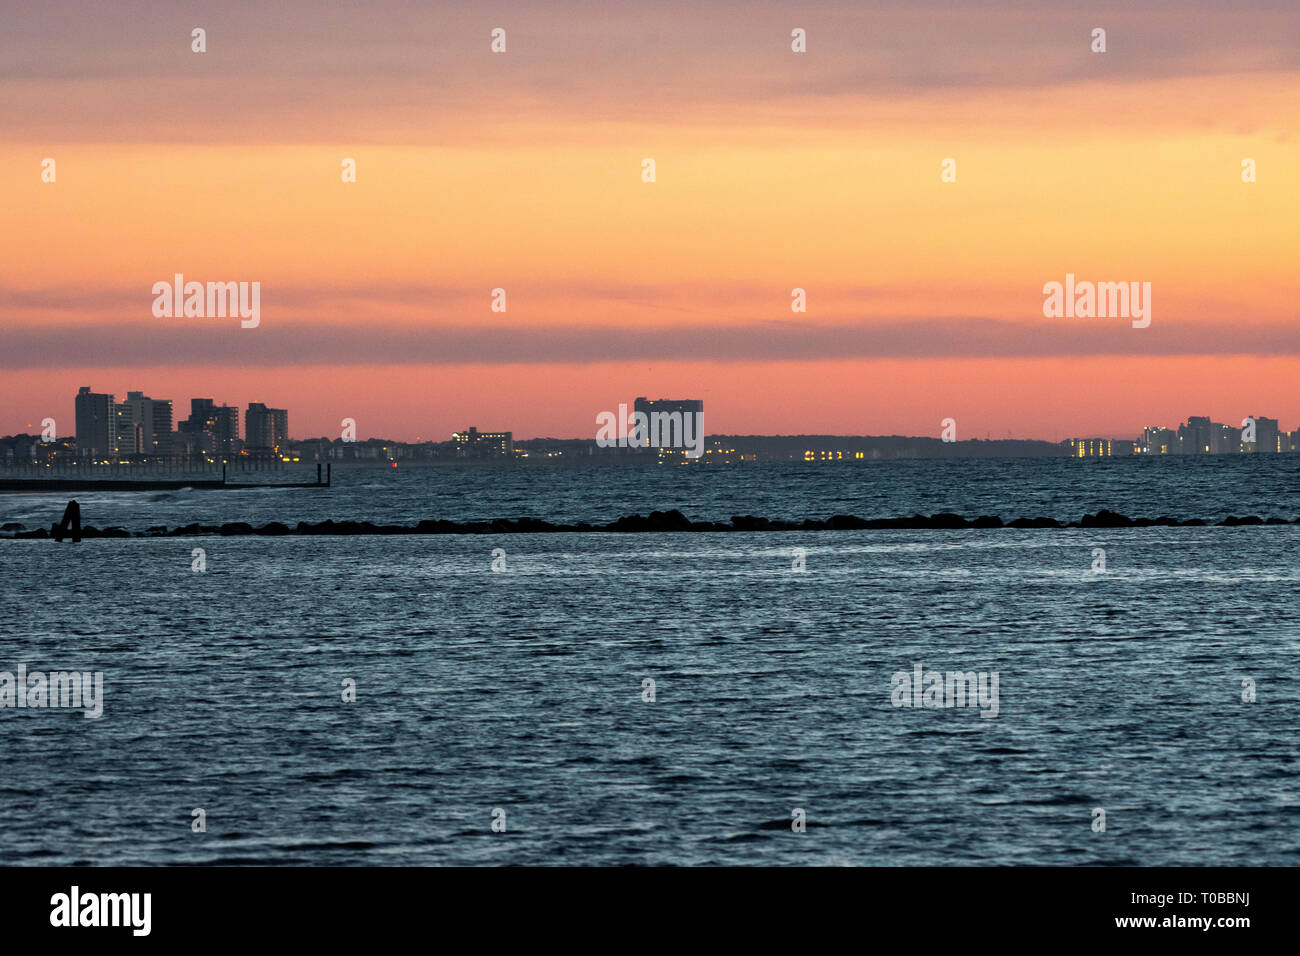 Sunrise over Garden City South Carolina, USA - Stock Image